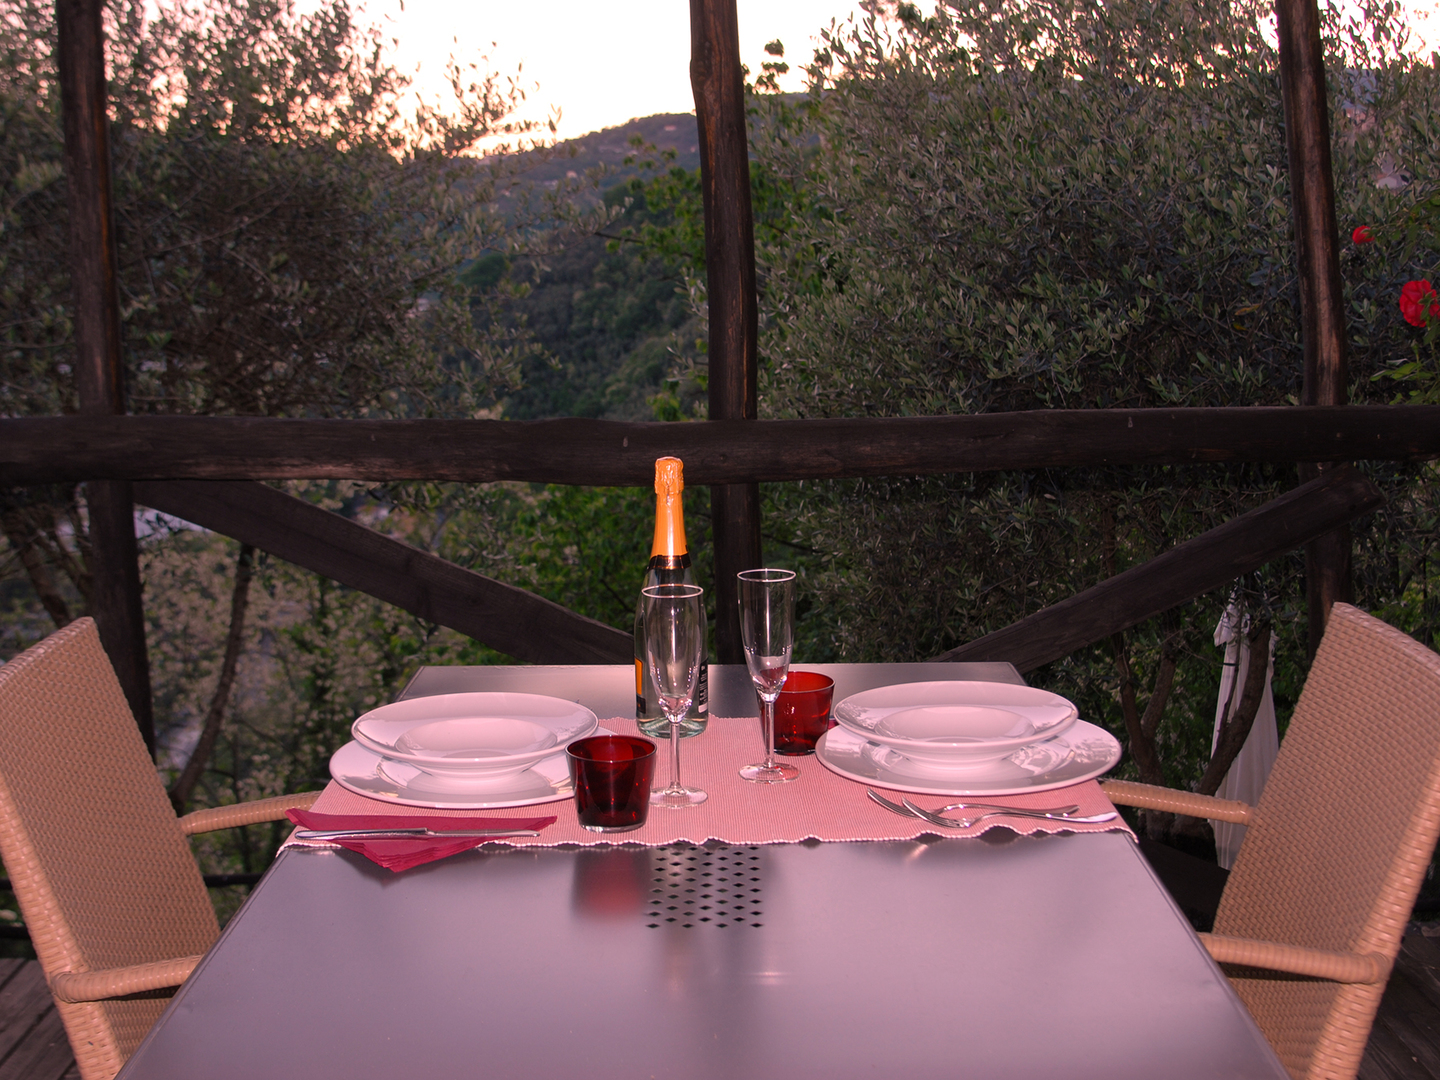 A glass of wine sitting on top of a picnic table at Villa Paggi country house.